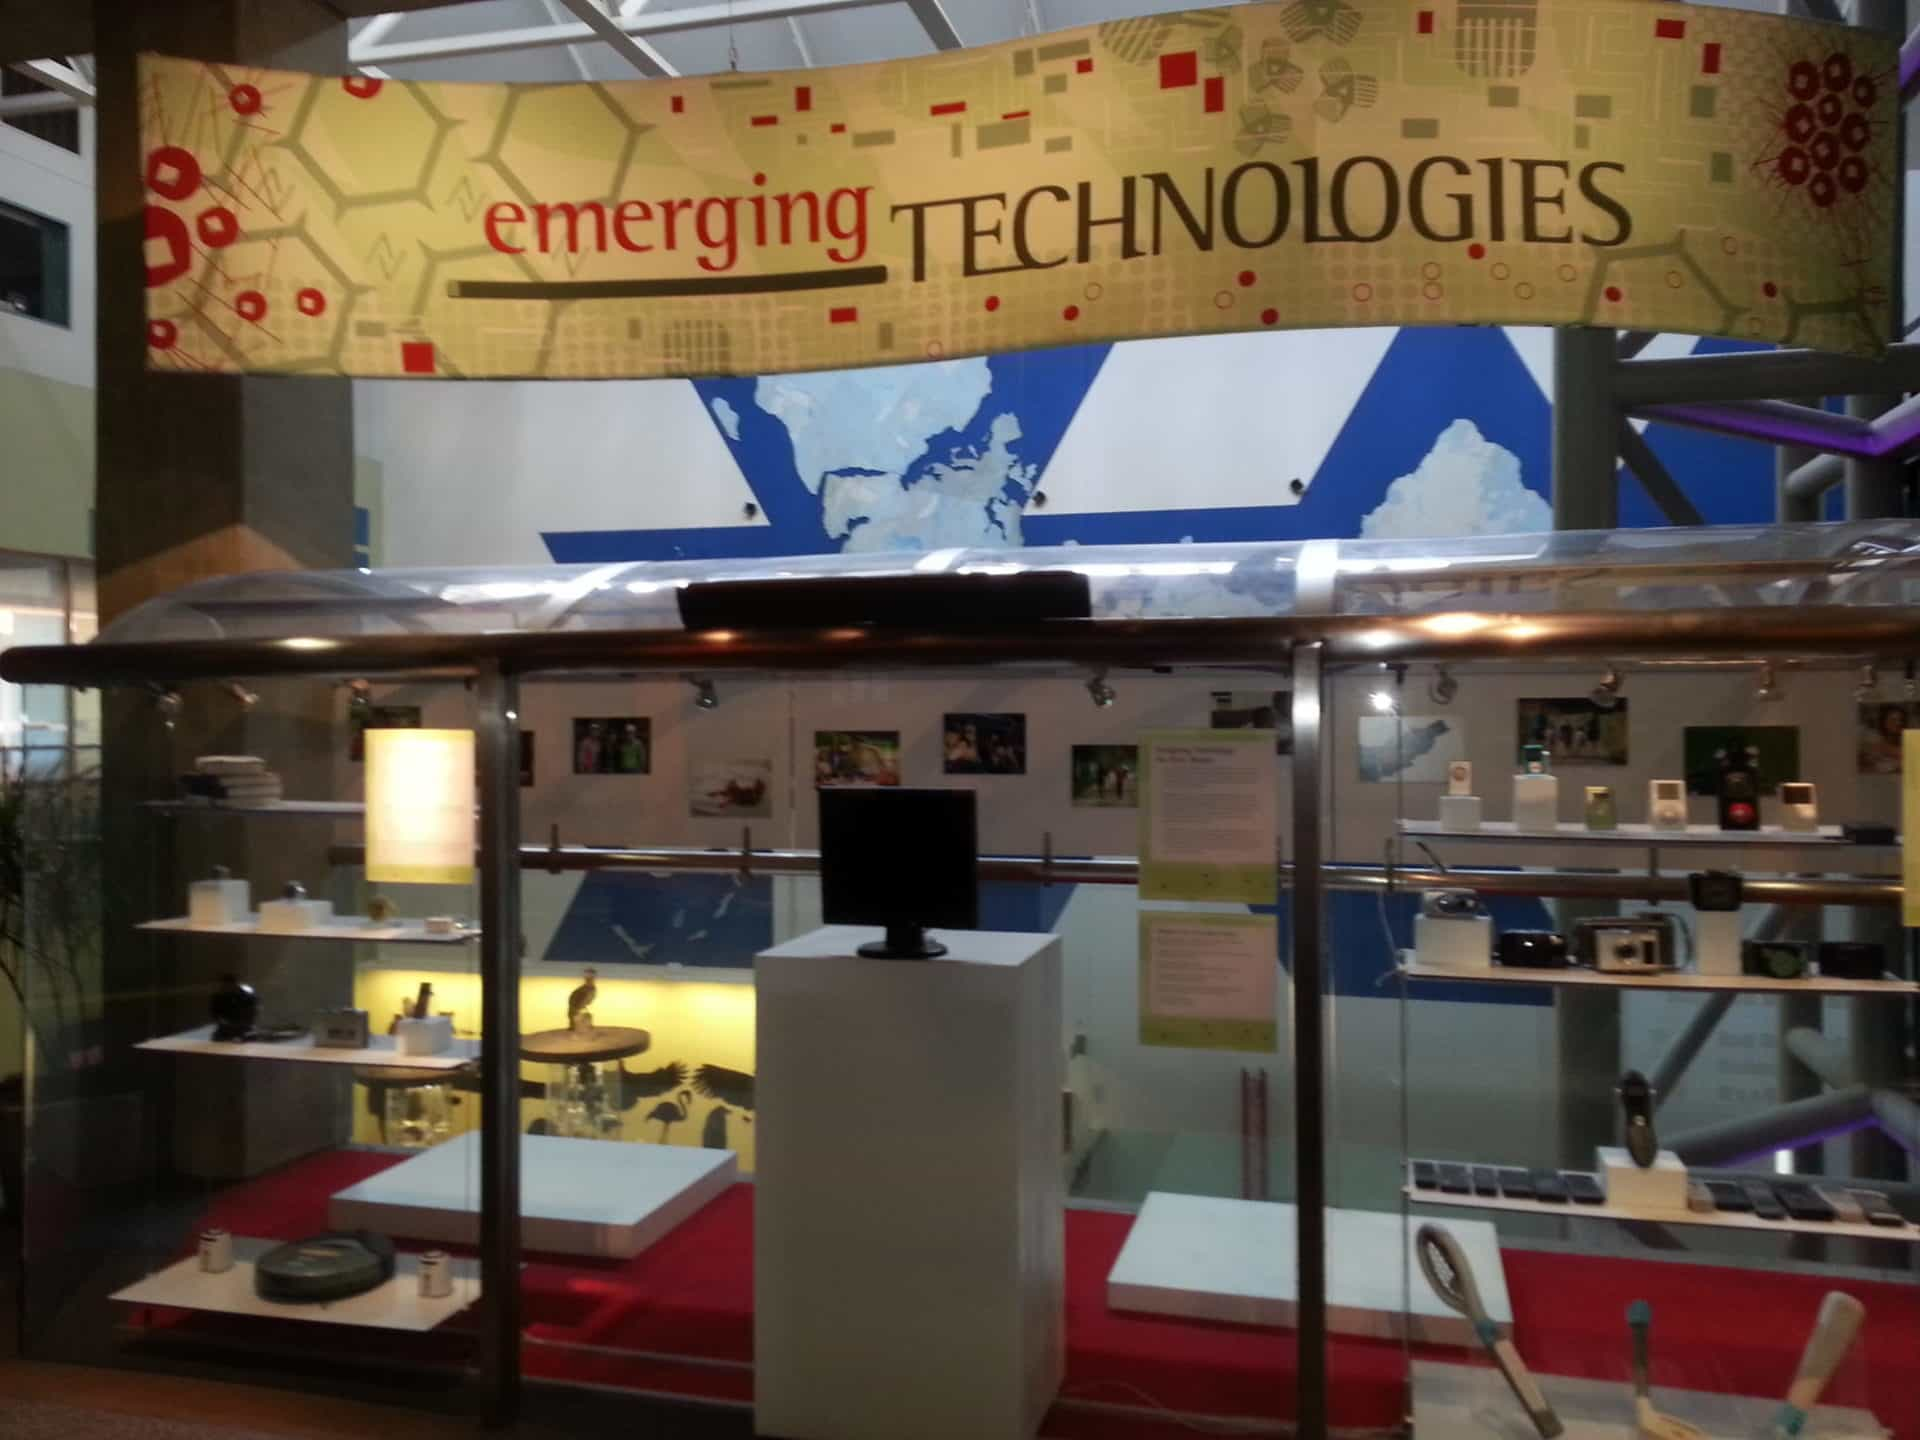 St Louis Science Center - emerging technology